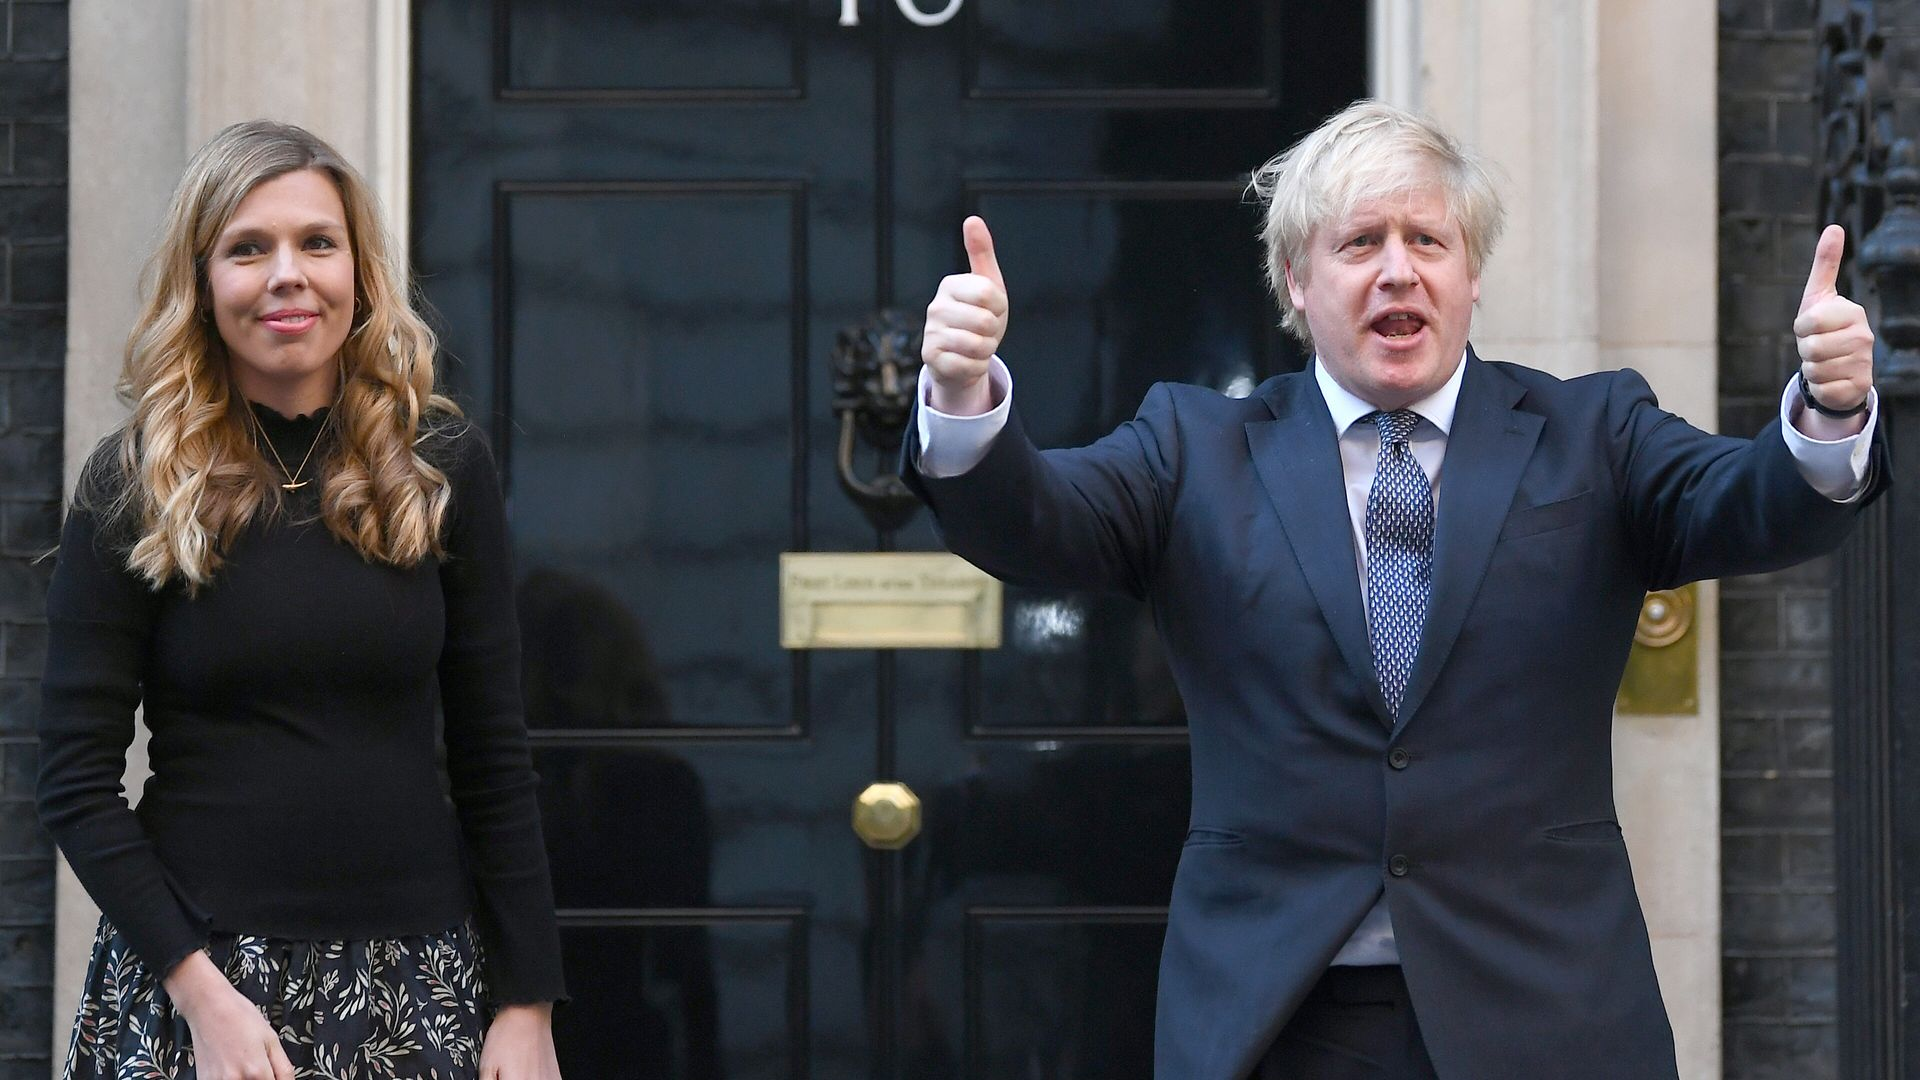 Prime minister Boris Johnson and his partner Carrie Symonds, stand in Downing Street, London - Credit: PA